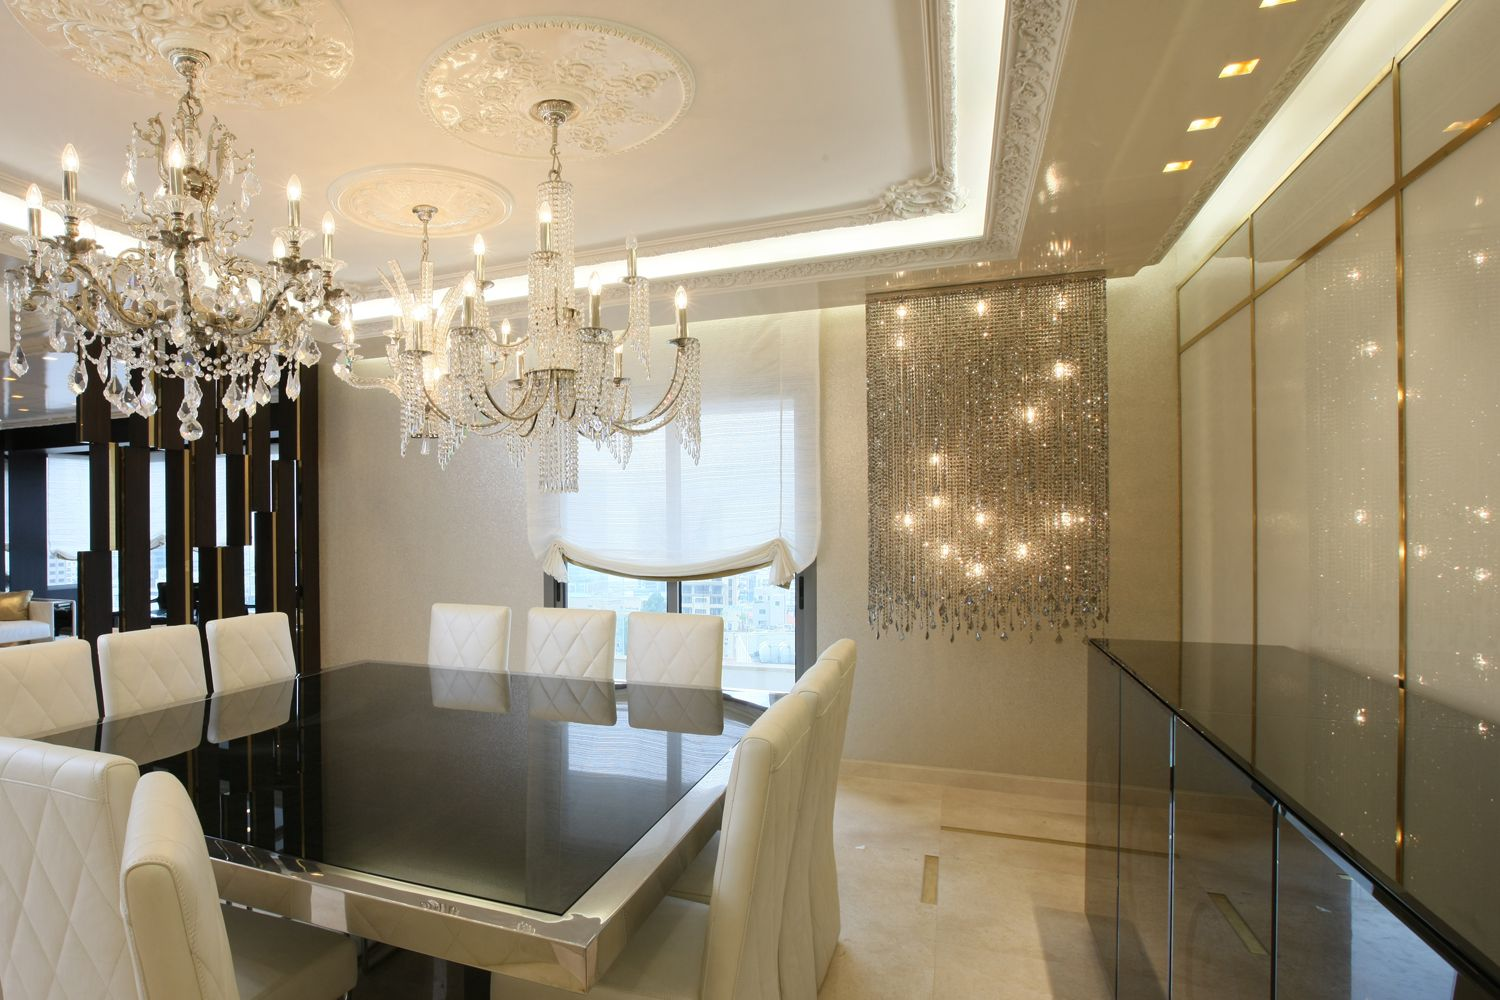 luxury modern diningcascading crystals back painted glass with golden frame - Luxury Modern Dining Room